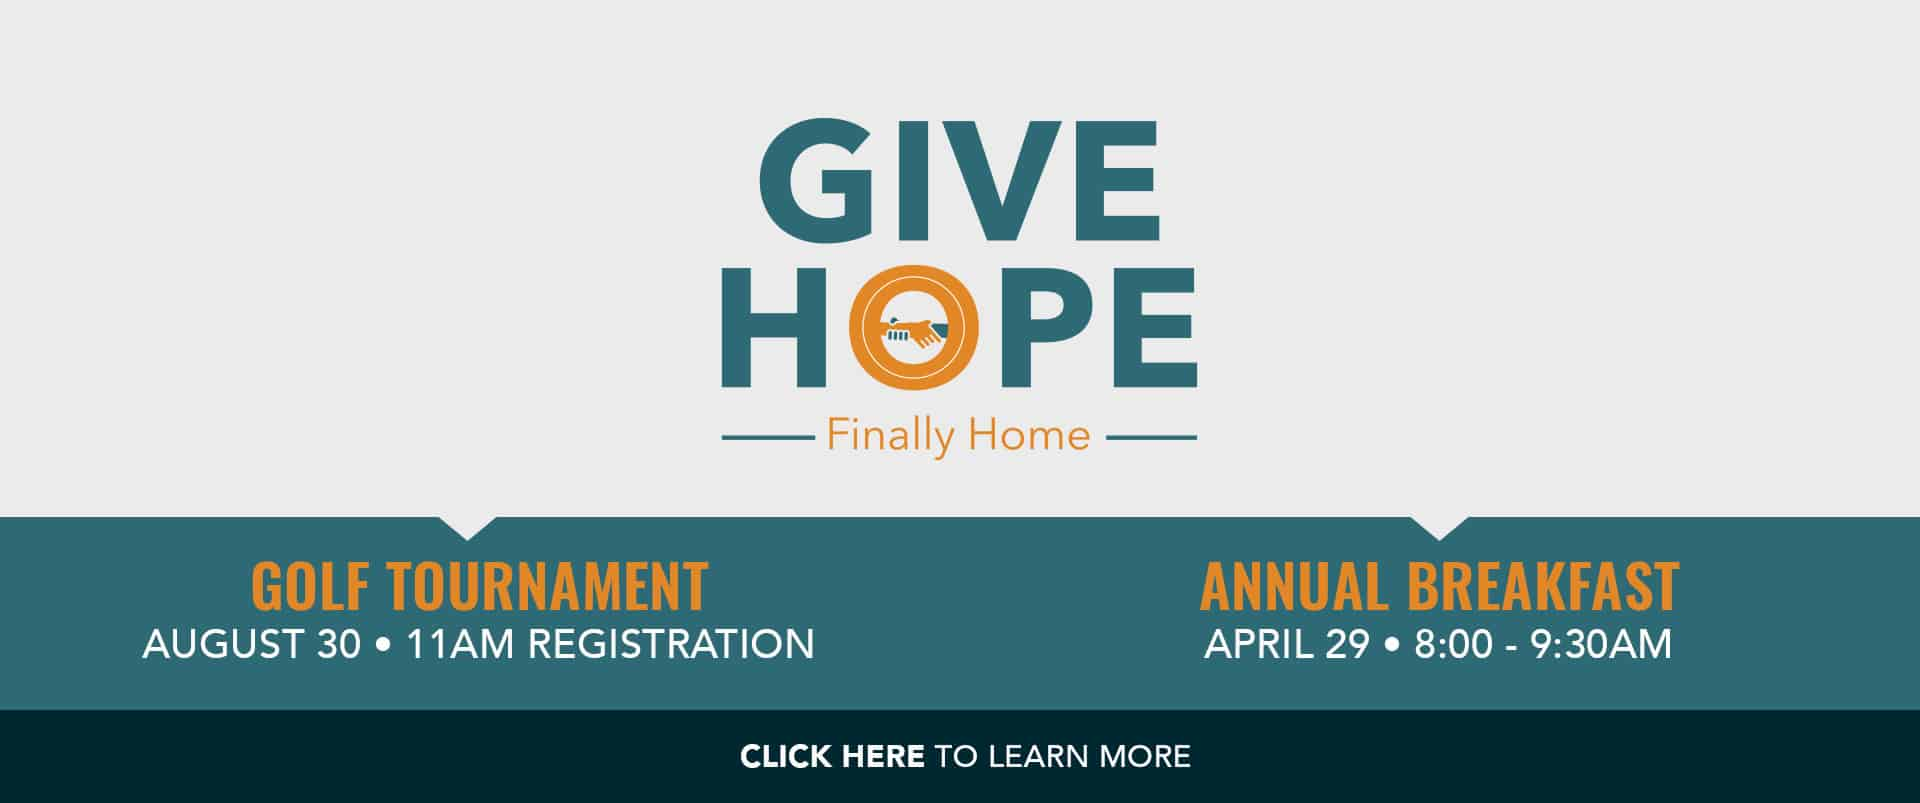 GIVE HOPE EVENTS